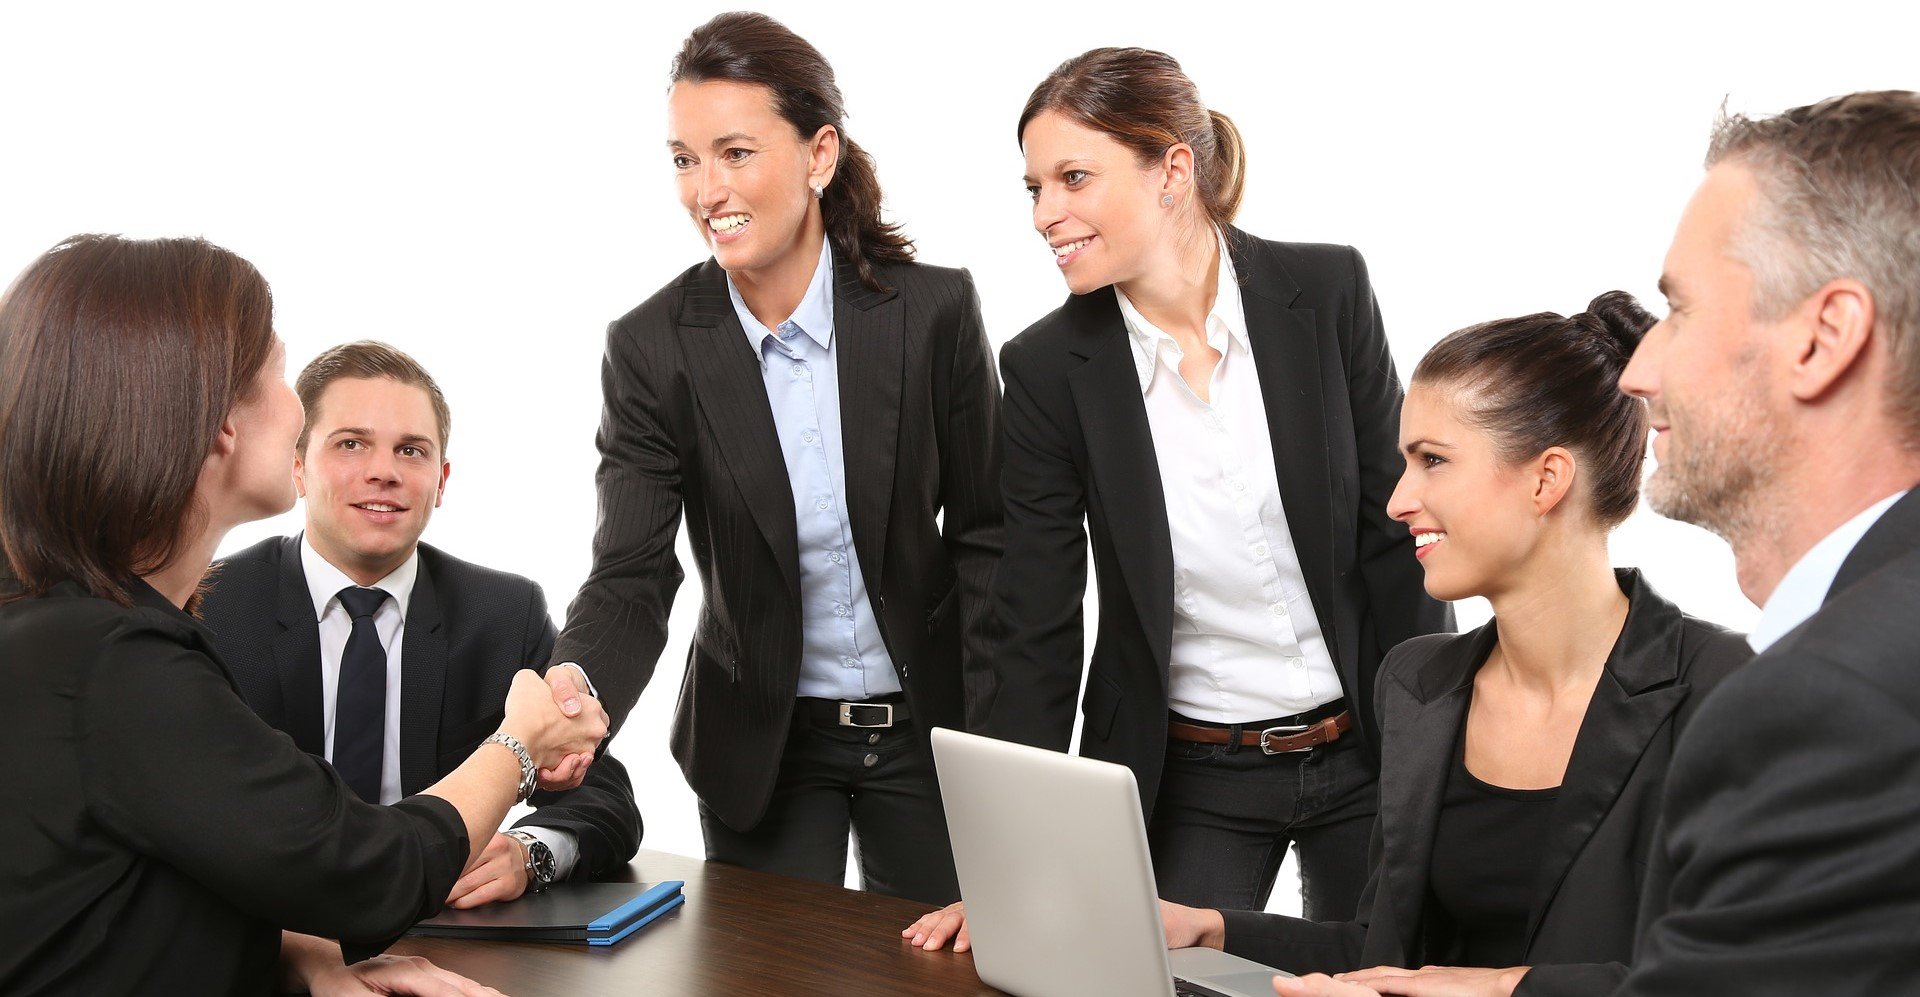 Getting the Best Value from Your Recruitment Agency